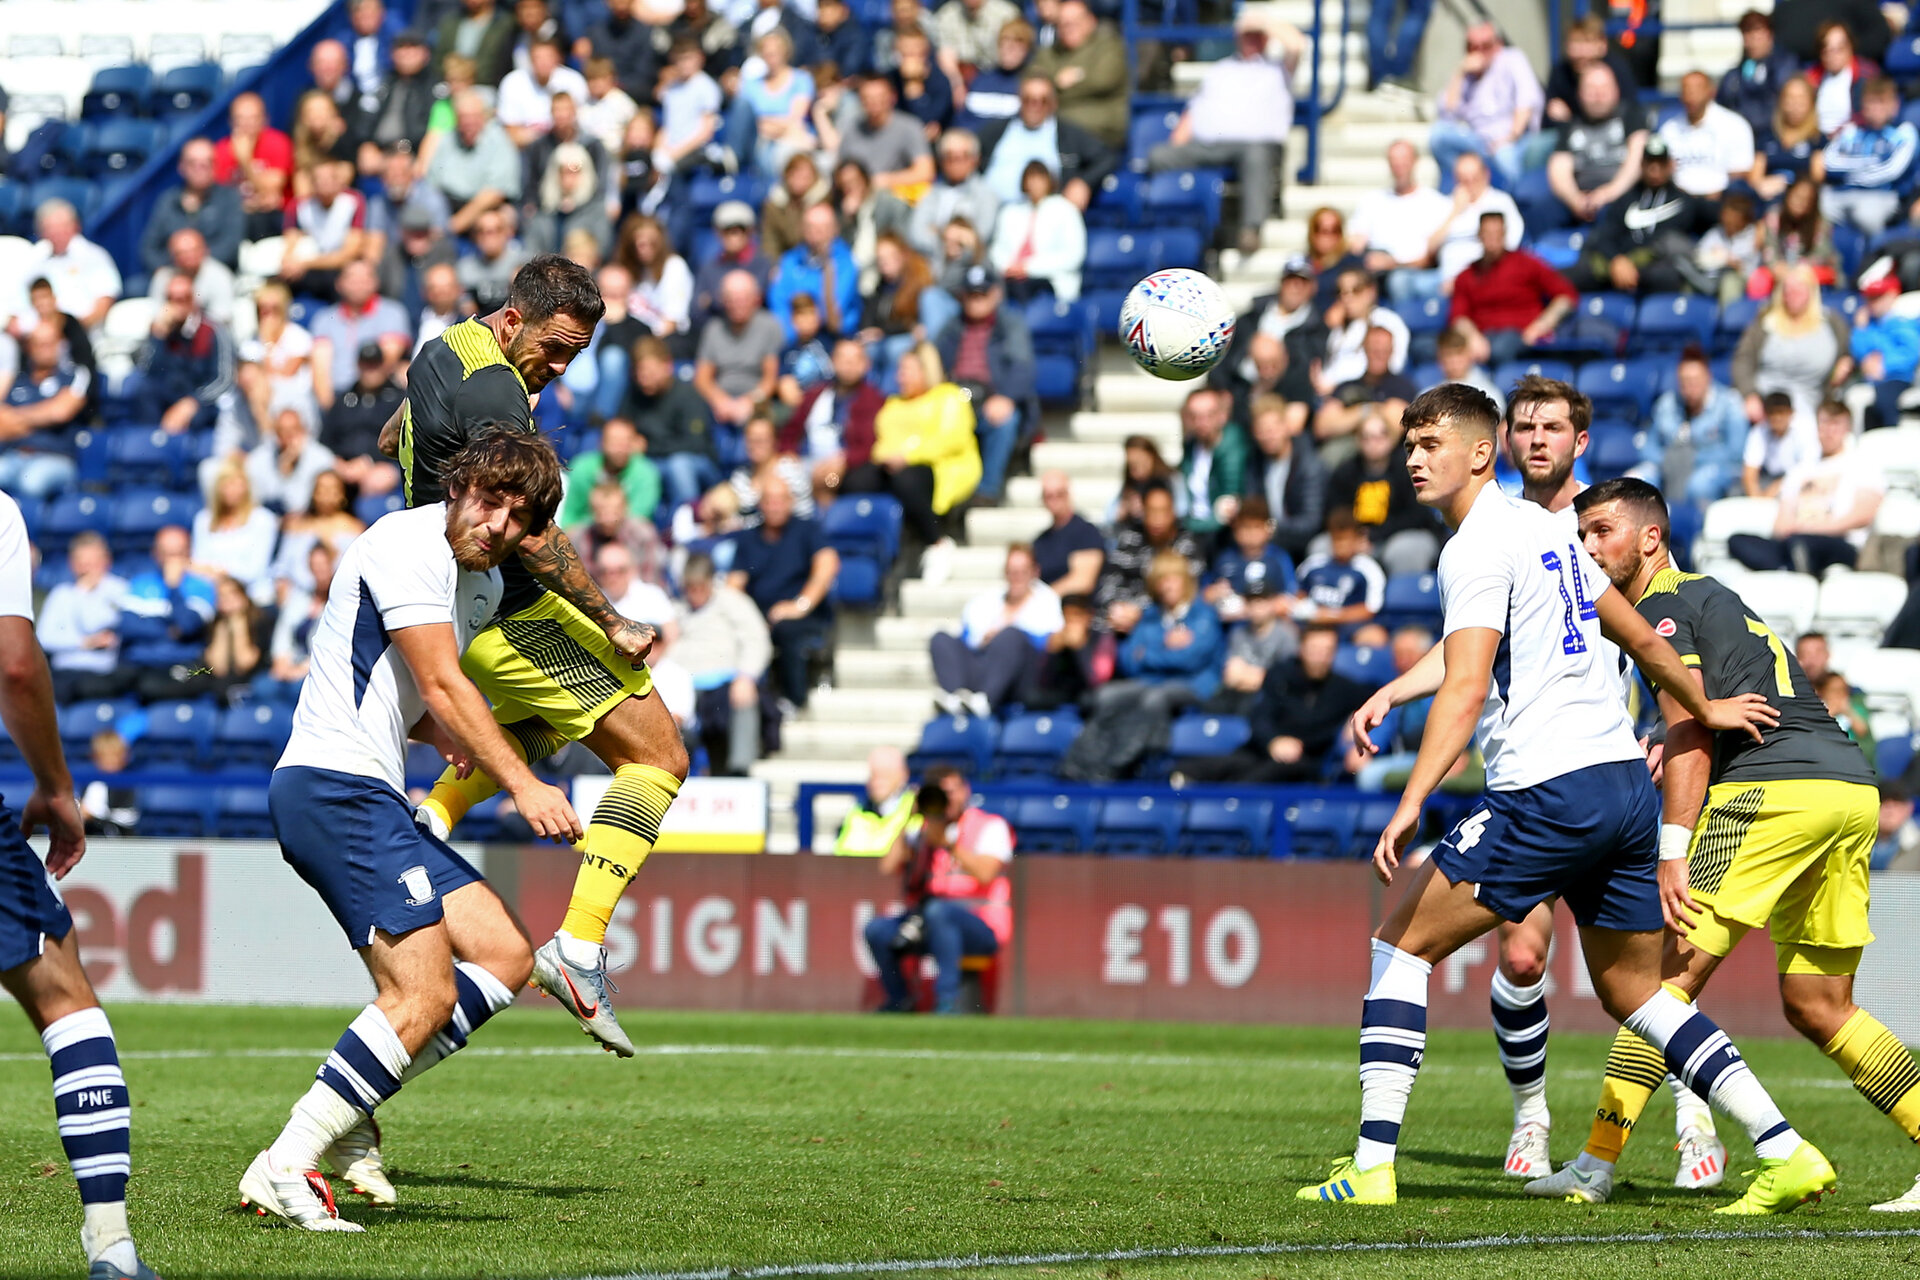 PRESTON, ENGLAND - JULY 20: during the pre-season friendly game between Preston North End and Southampton FC pictured at Deepdale on July 20, 2019 in Preston, England. (Photo by James Bridle - Southampton FC/Southampton FC via Getty Images)